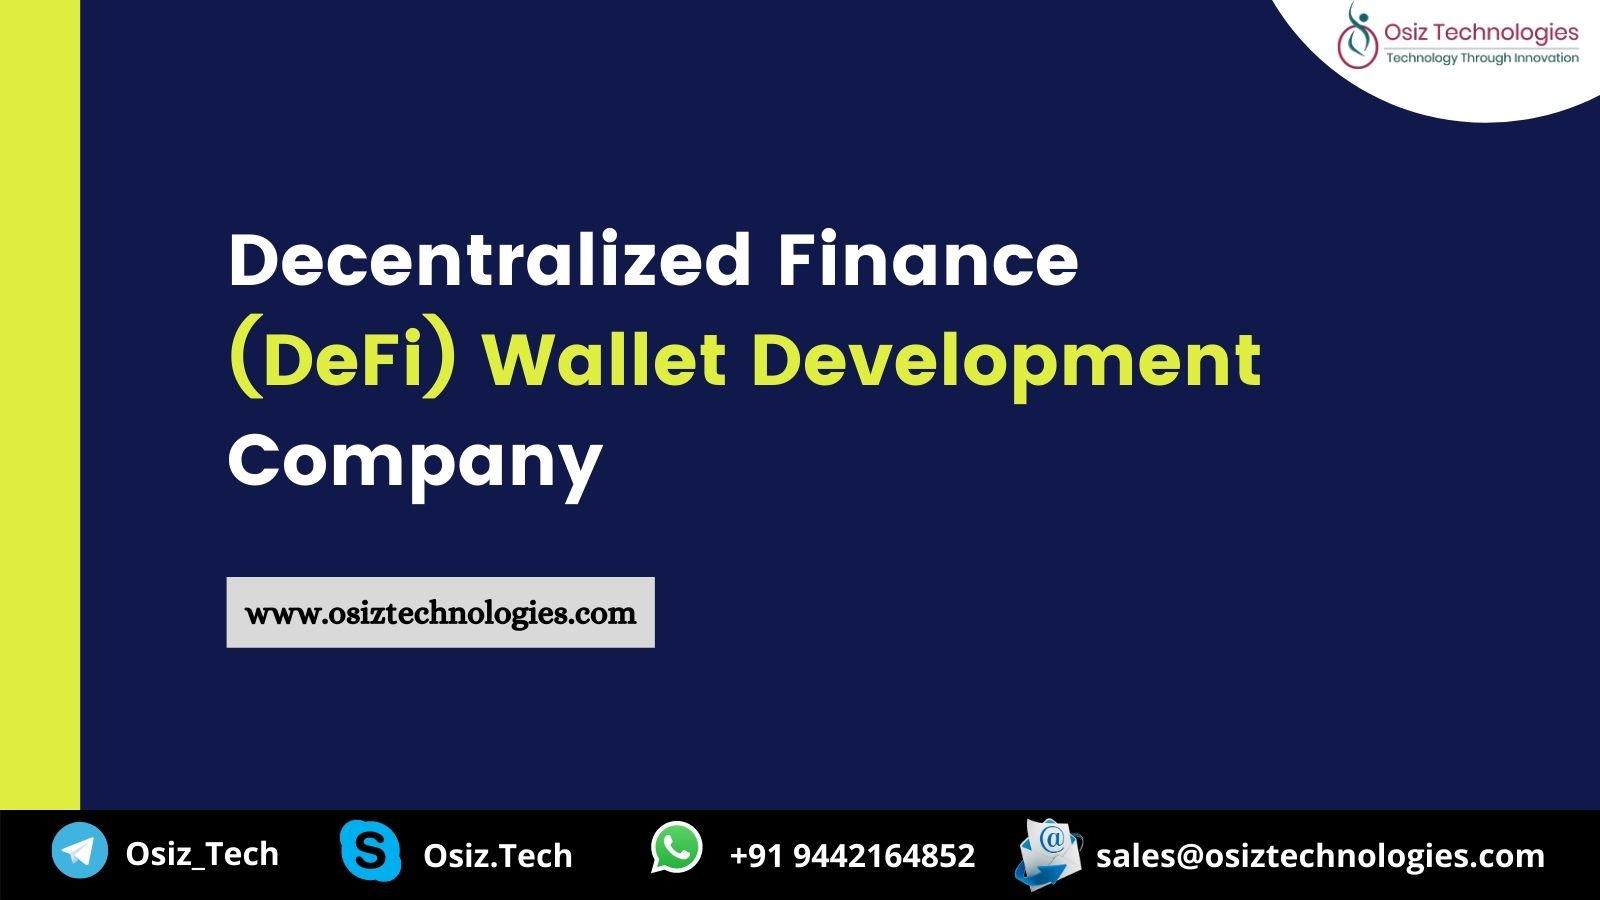 DeFi Wallet Development Company - Why DeFi wallets are an integral part of your DeFi ecosystem?